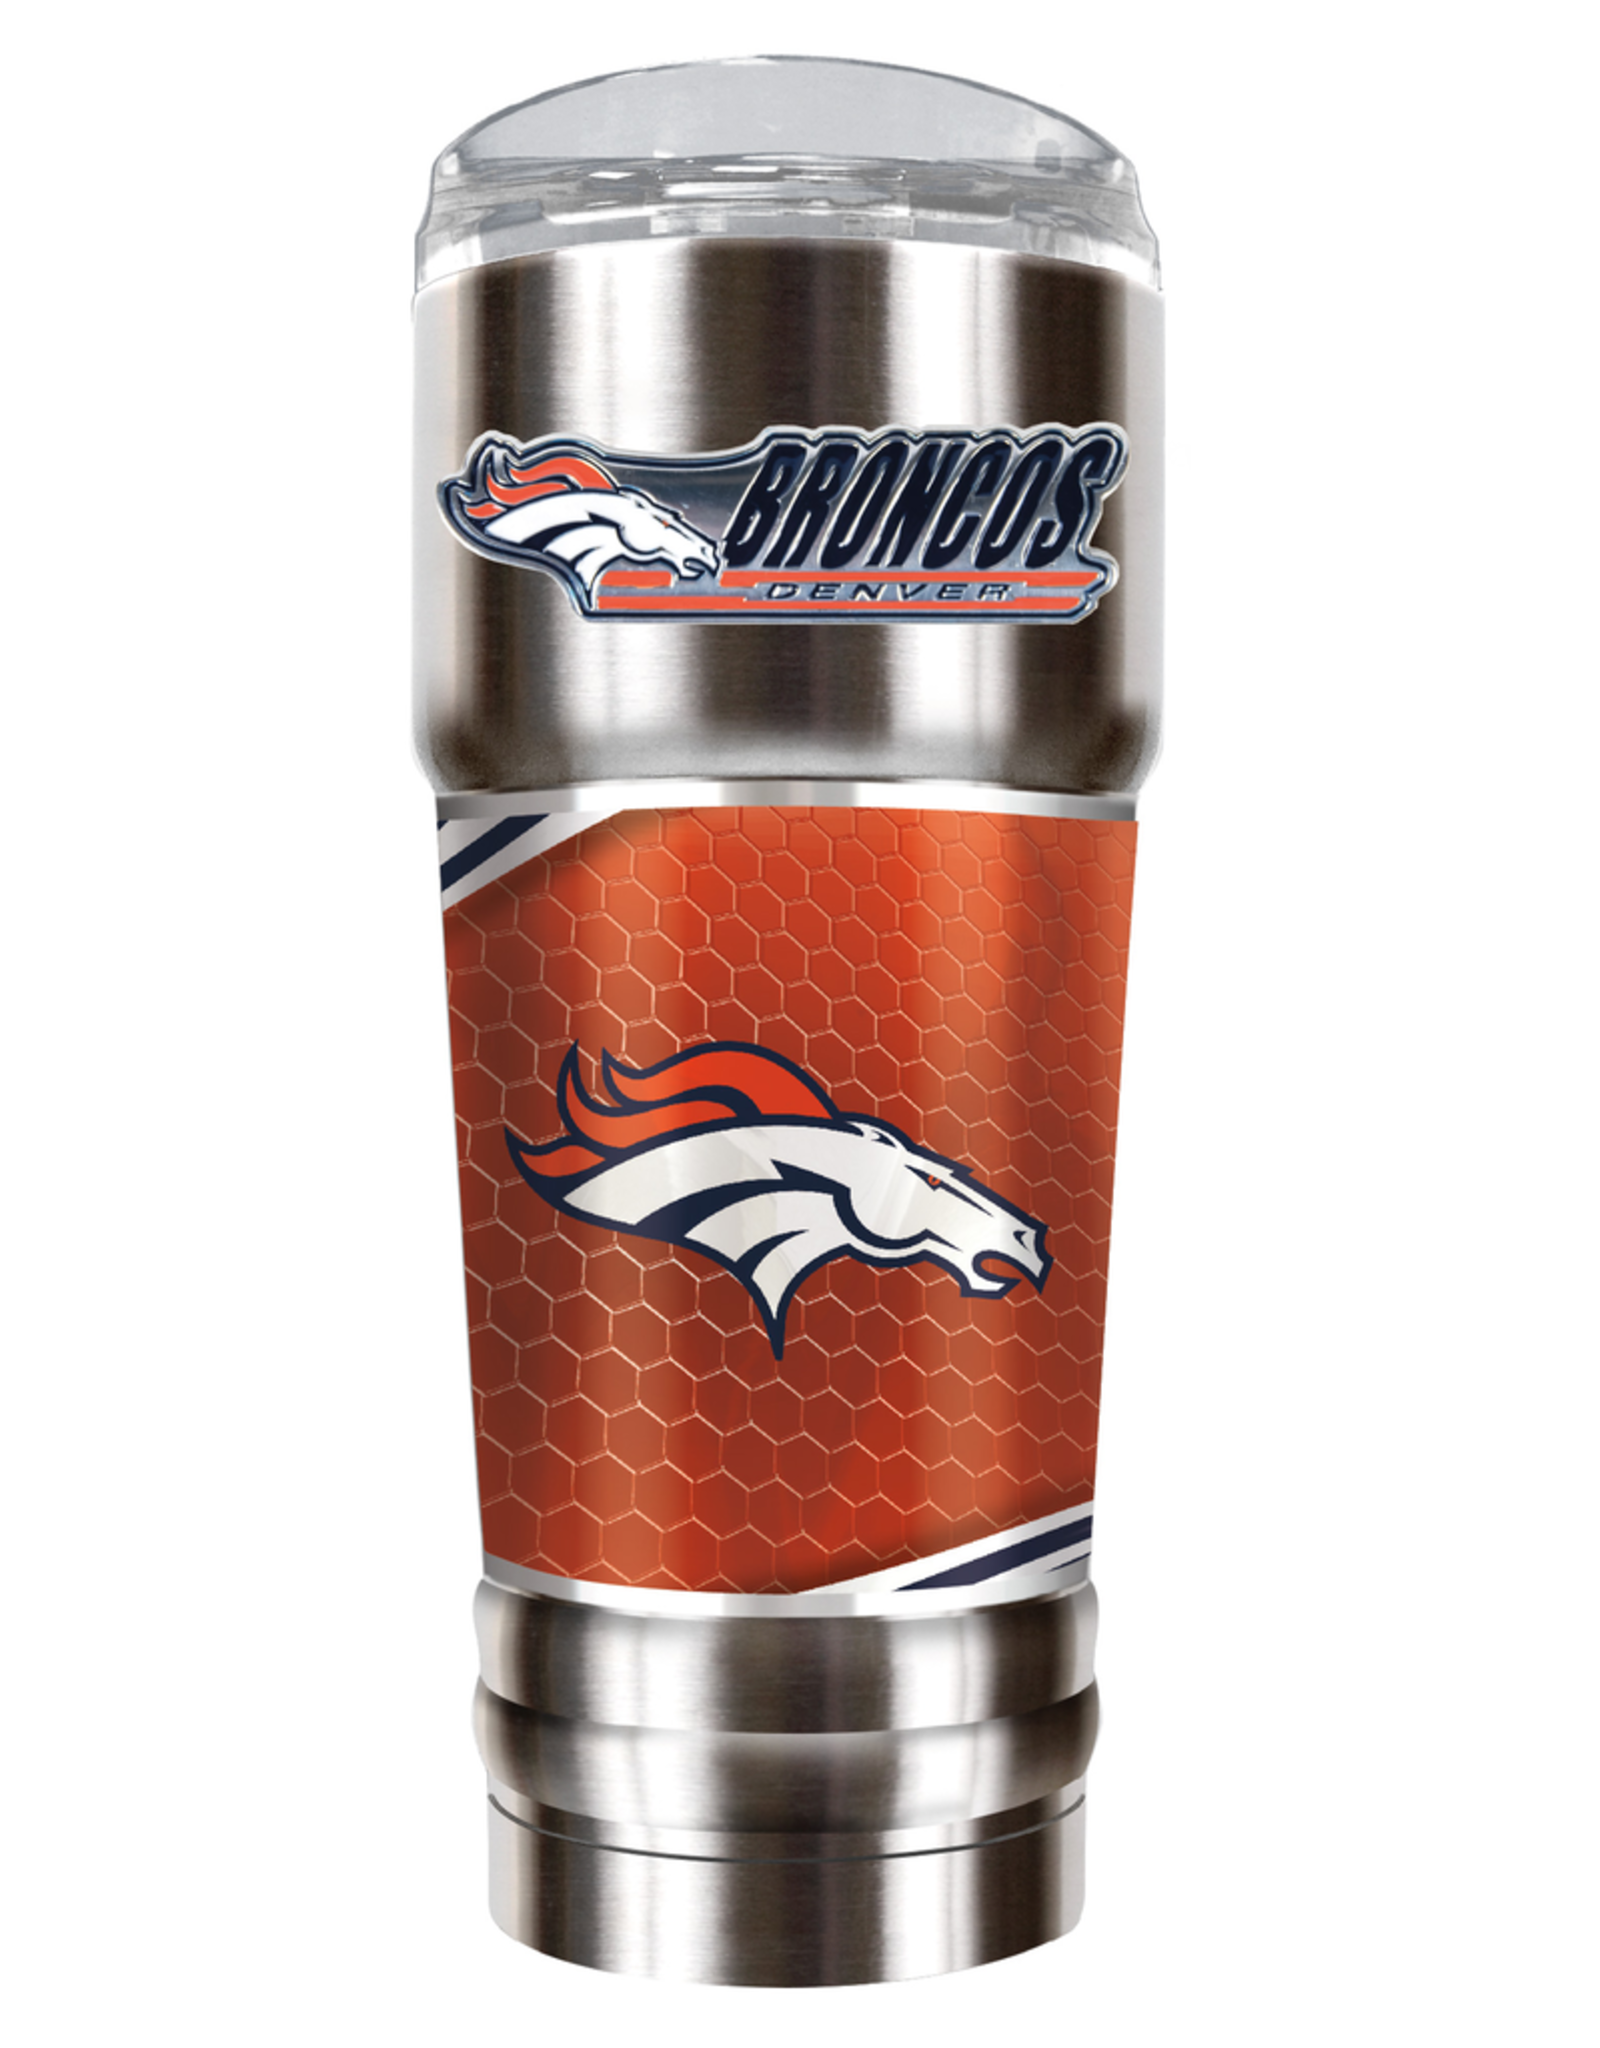 GREAT AMERICAN PRODUCTS Denver Broncos 32oz Stainless Steel PRO Tumbler